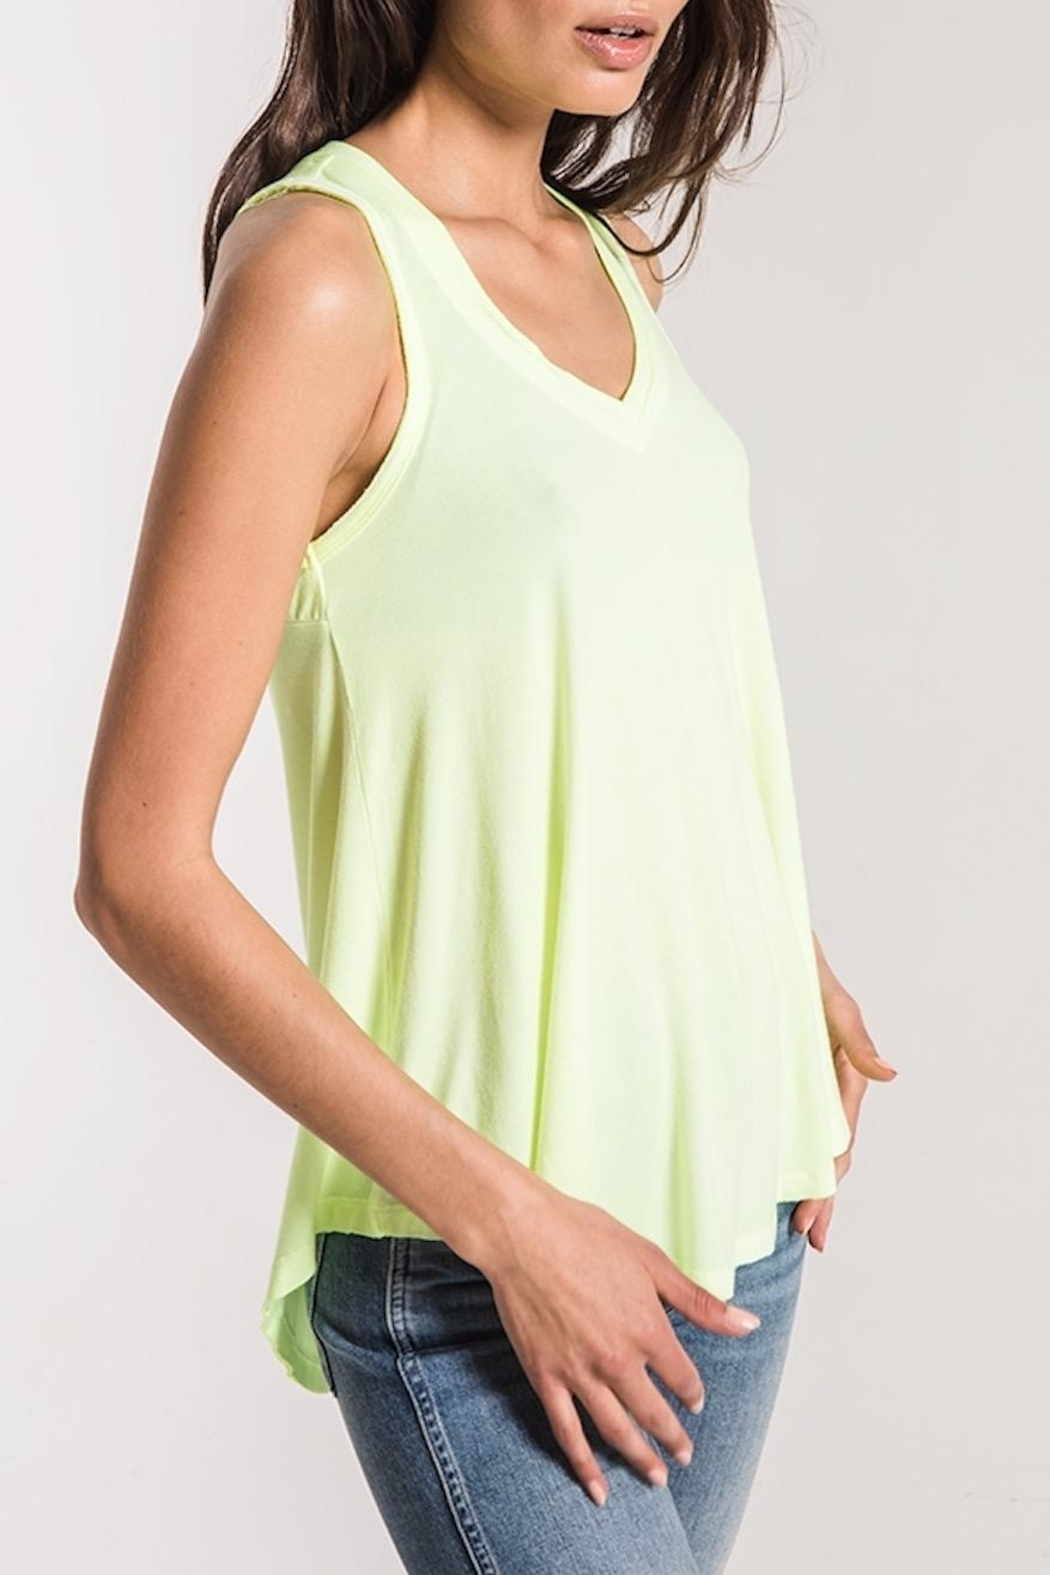 z supply Neon Lime Tank - Back Cropped Image